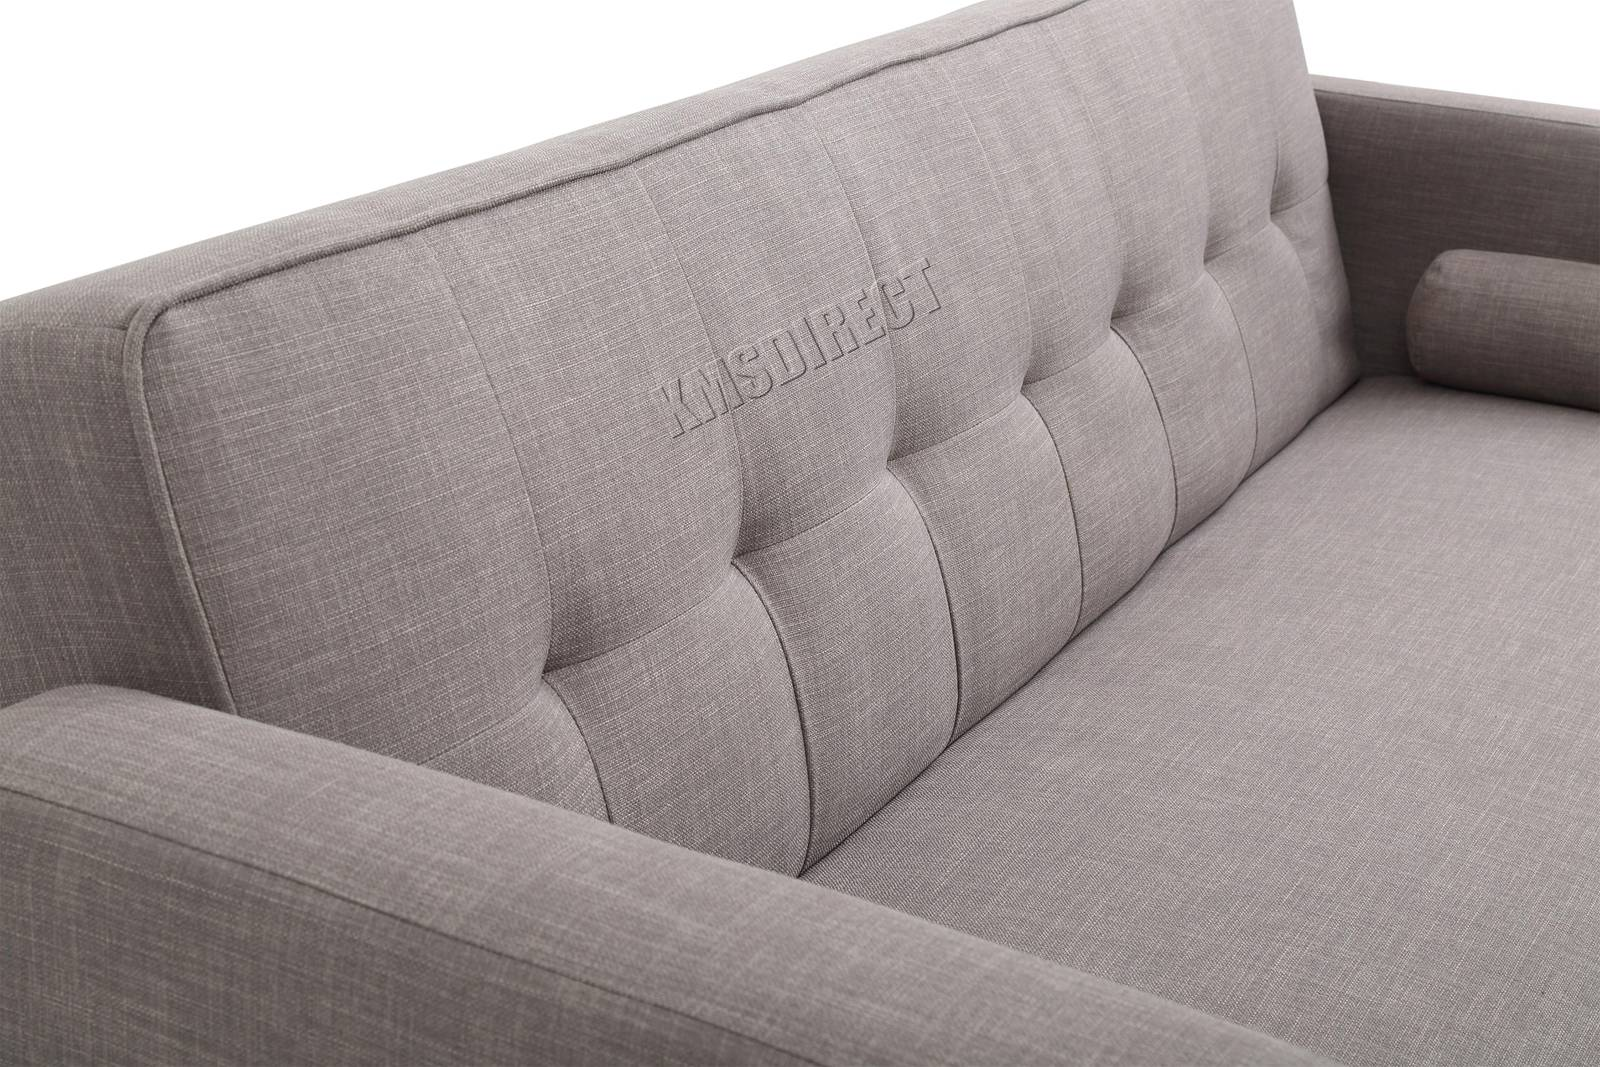 WestWood-Fabric-Sofa-Bed-3-Seater-Couch-Luxury-Modern-Home-Furniture-FSB04-New thumbnail 30